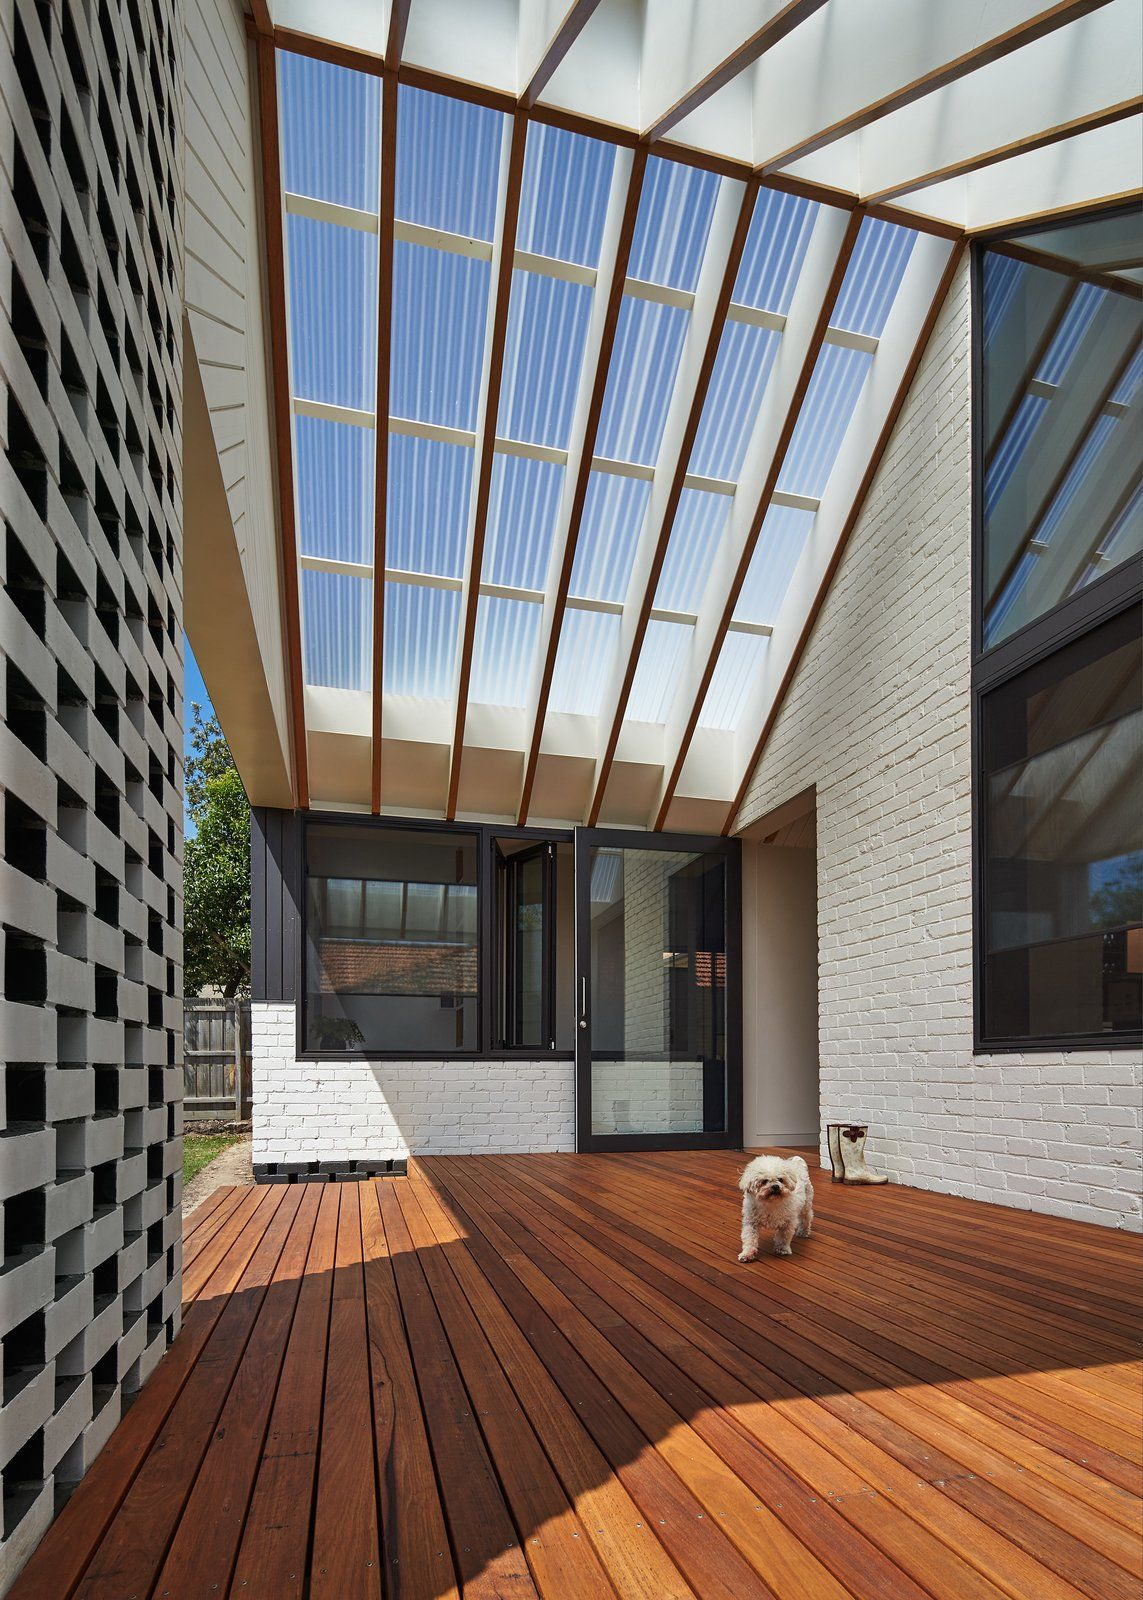 A New Hip Roof Rejuvenates A California Style Bungalow In Melbourne Gable House Roof Architecture Architecture